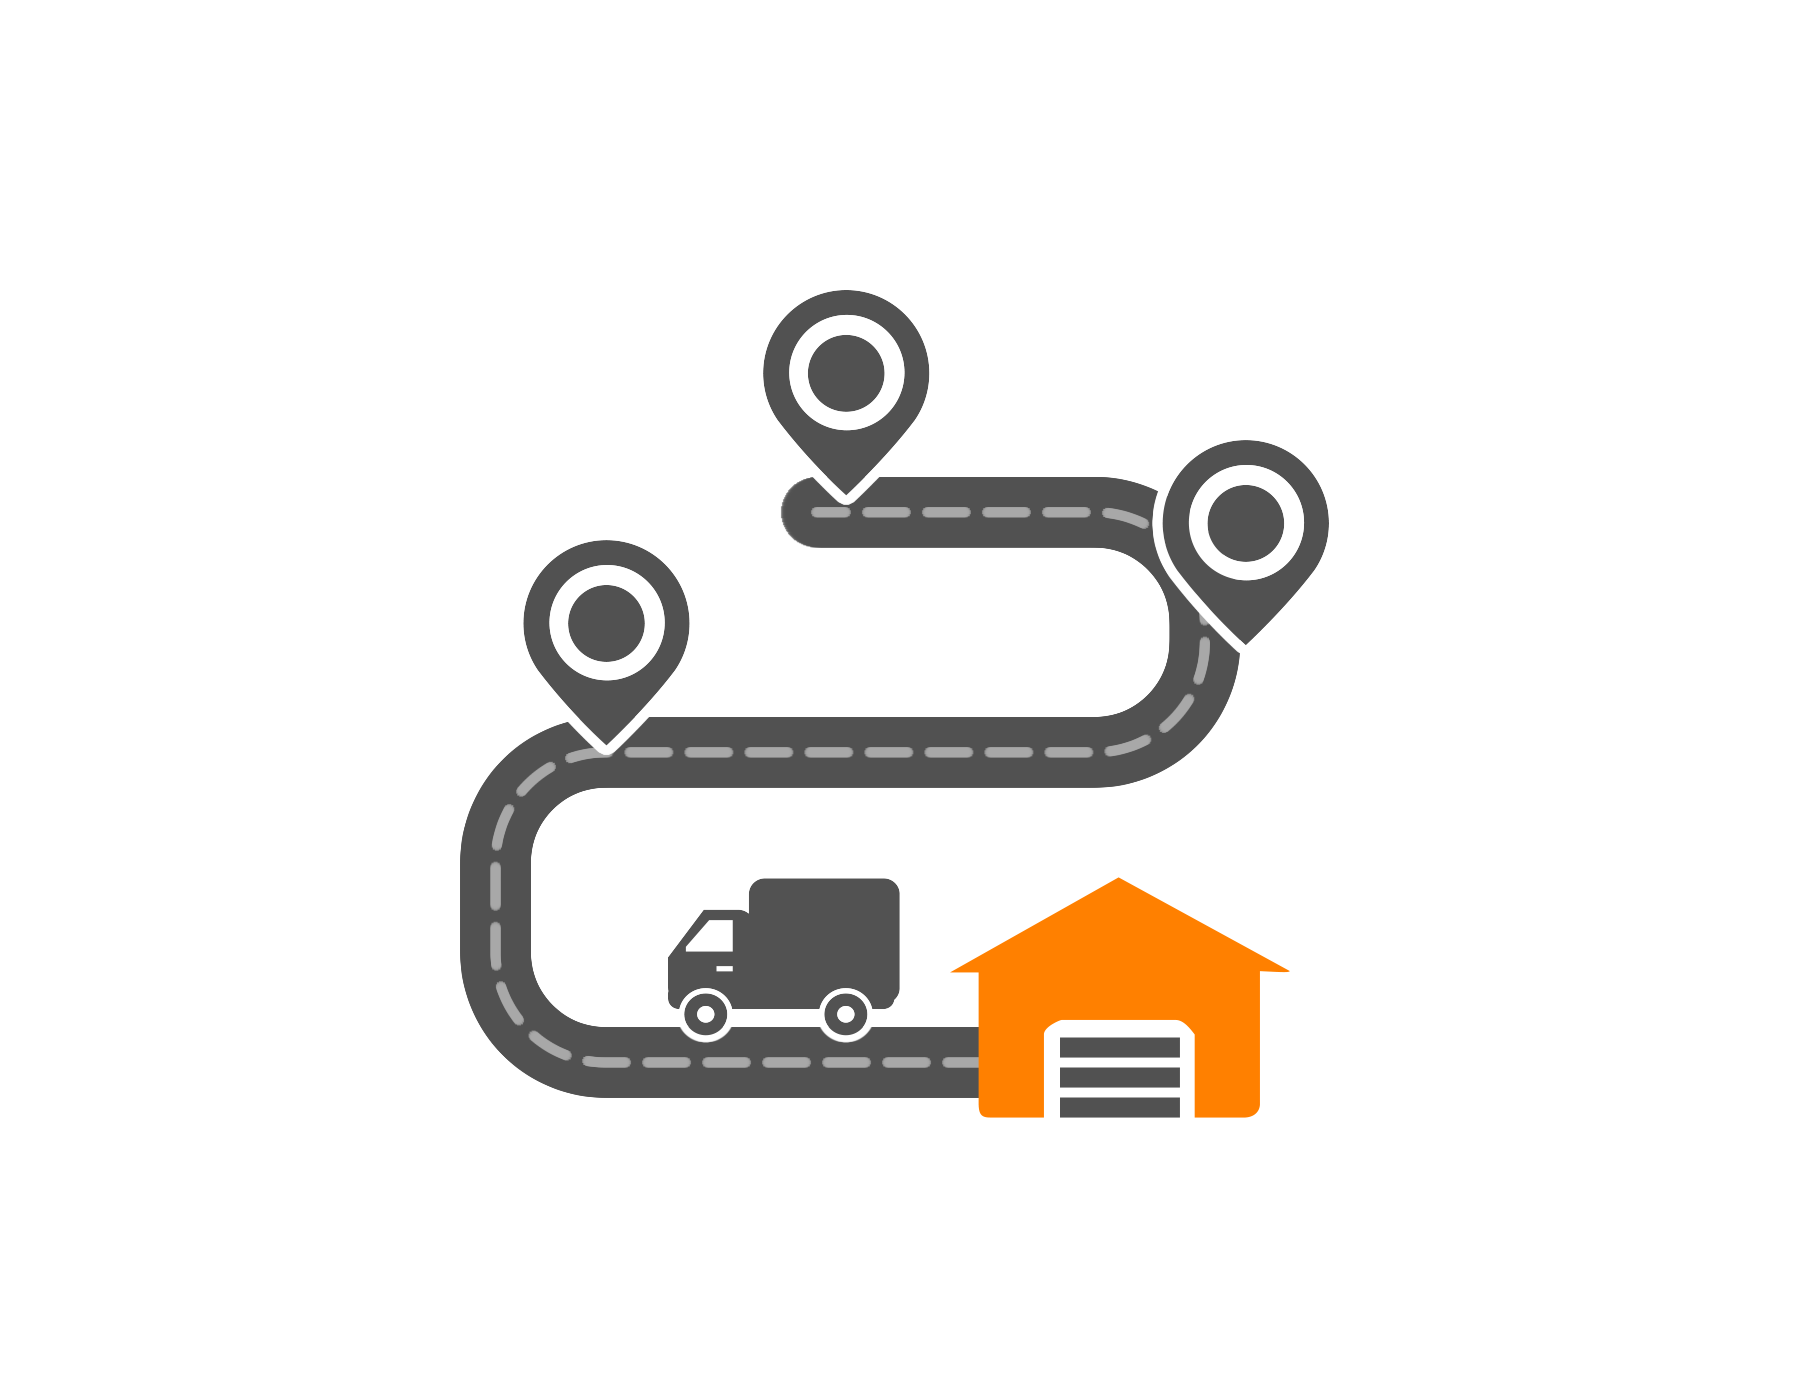 Optimize your route in Route4Me with a single depot and single driver, without constraints